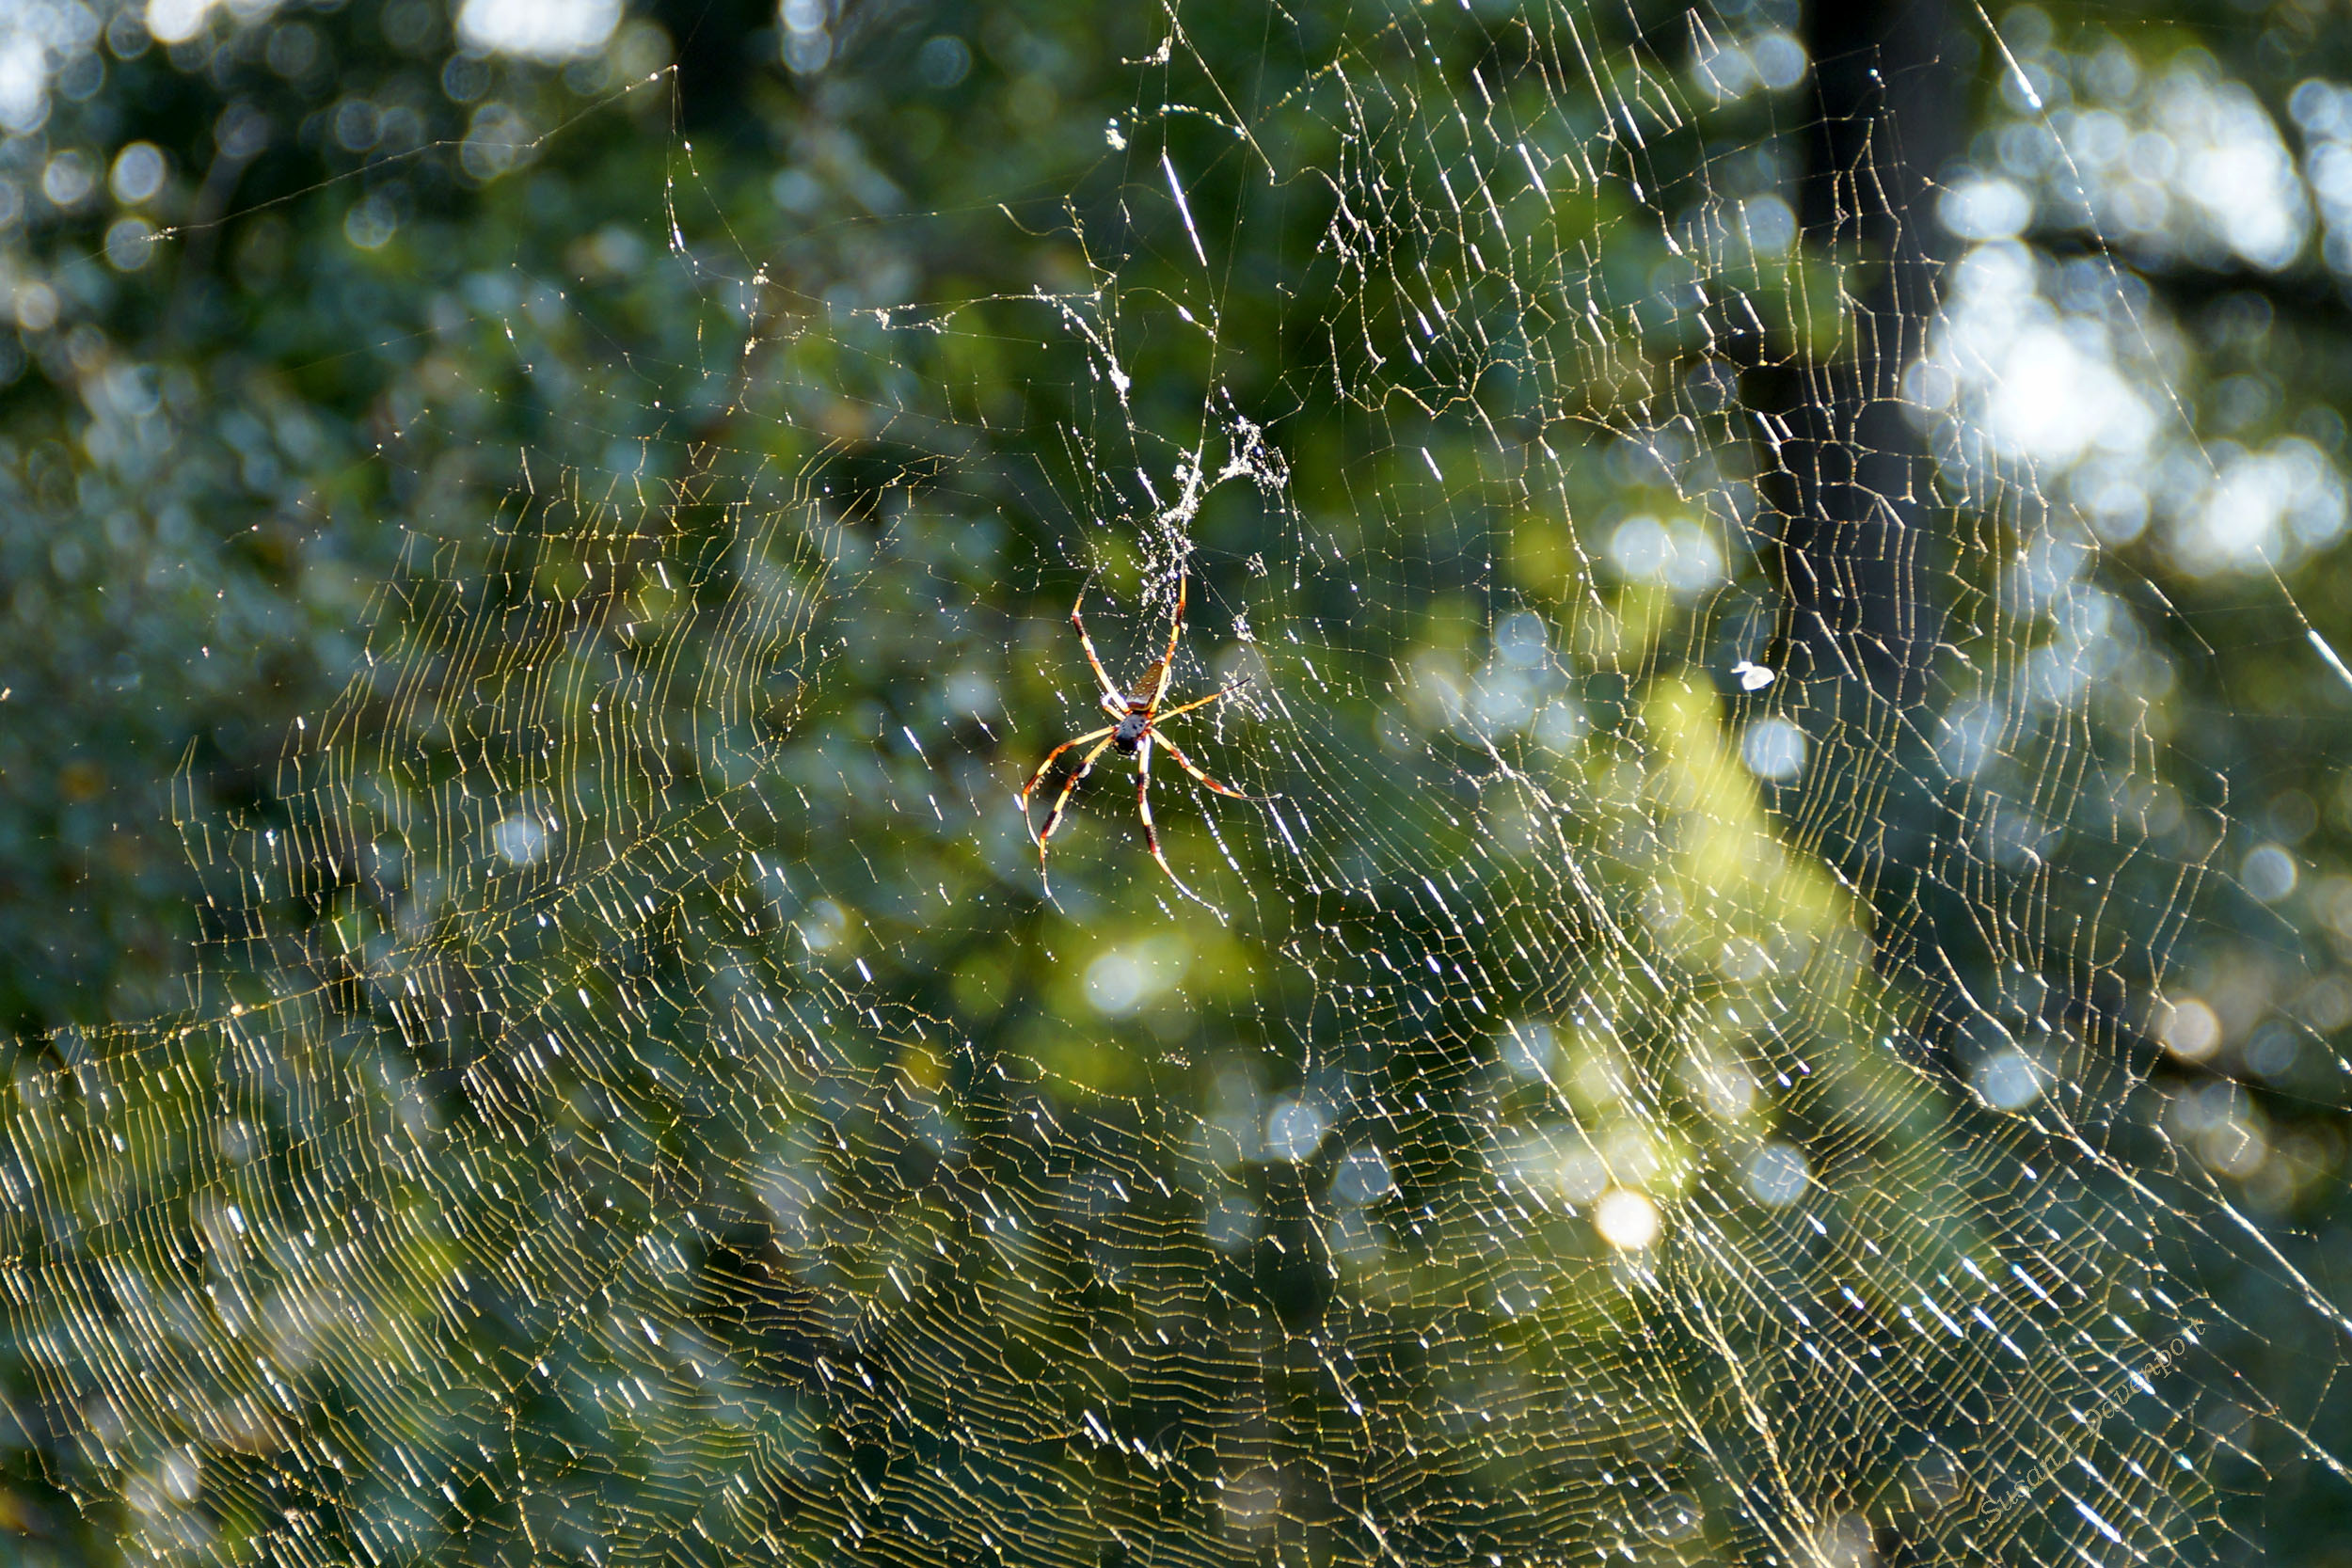 Golden Orb Spider: Web shining gold